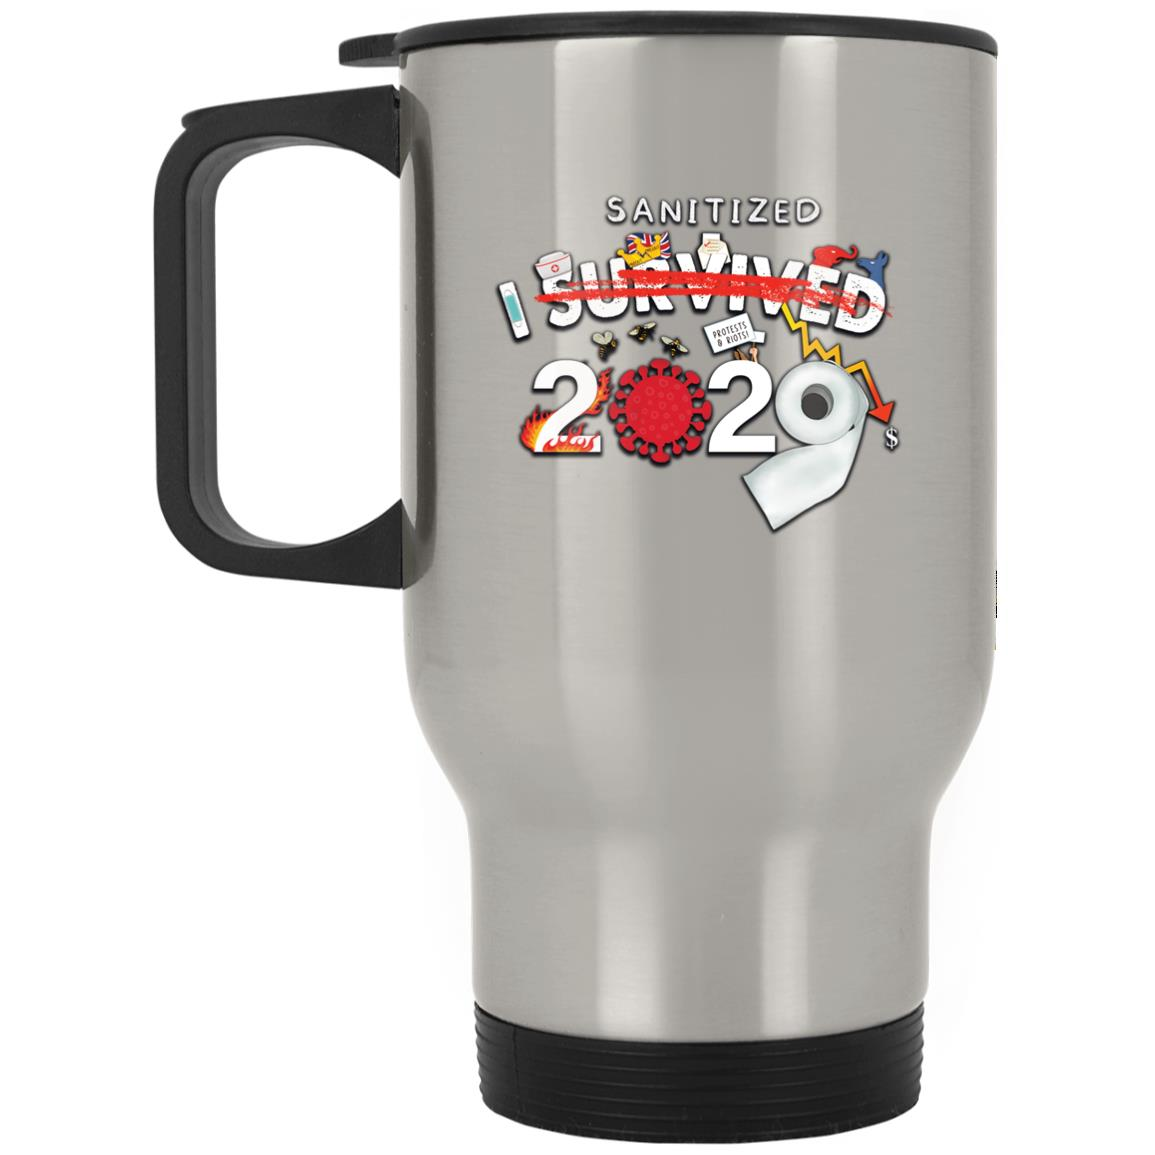 I Sanitized 2020 - Silver Stainless Travel Mug